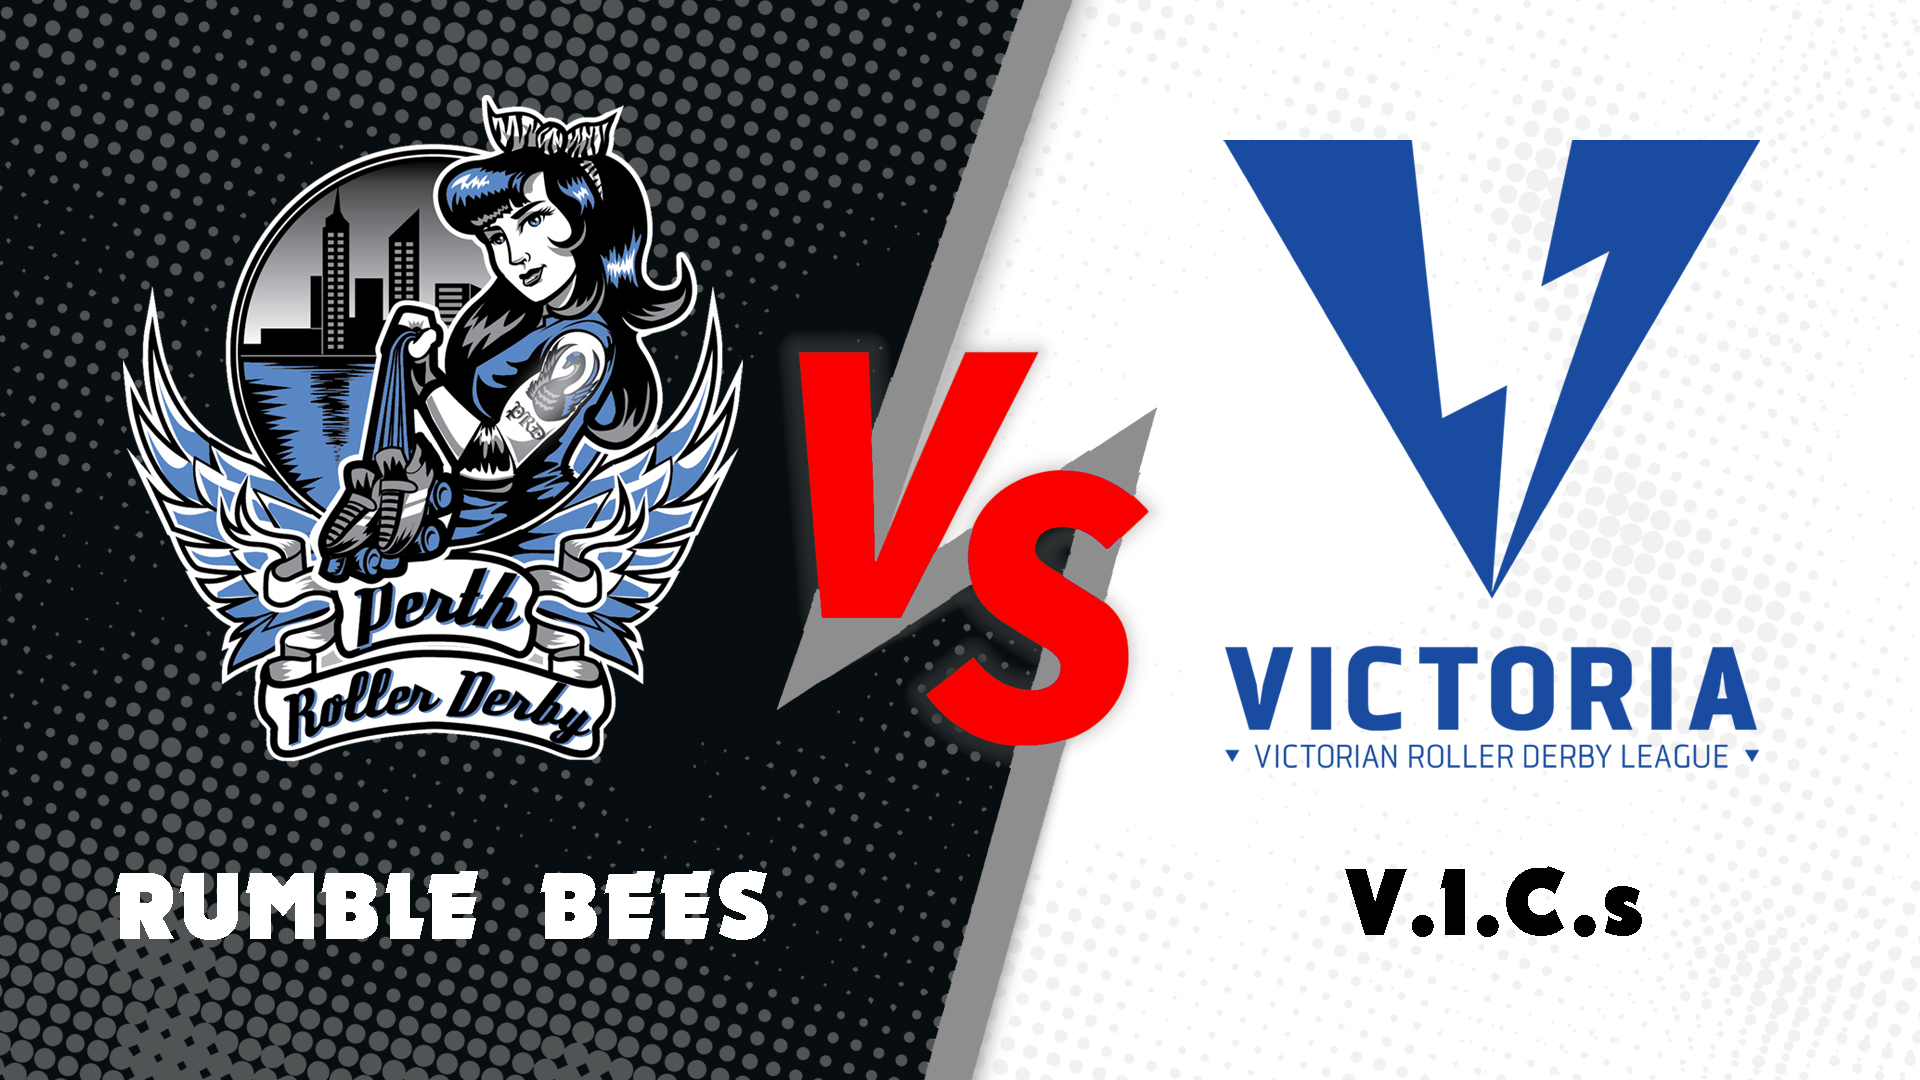 PRD Rumble Bees VS VRDL V.I.C.s